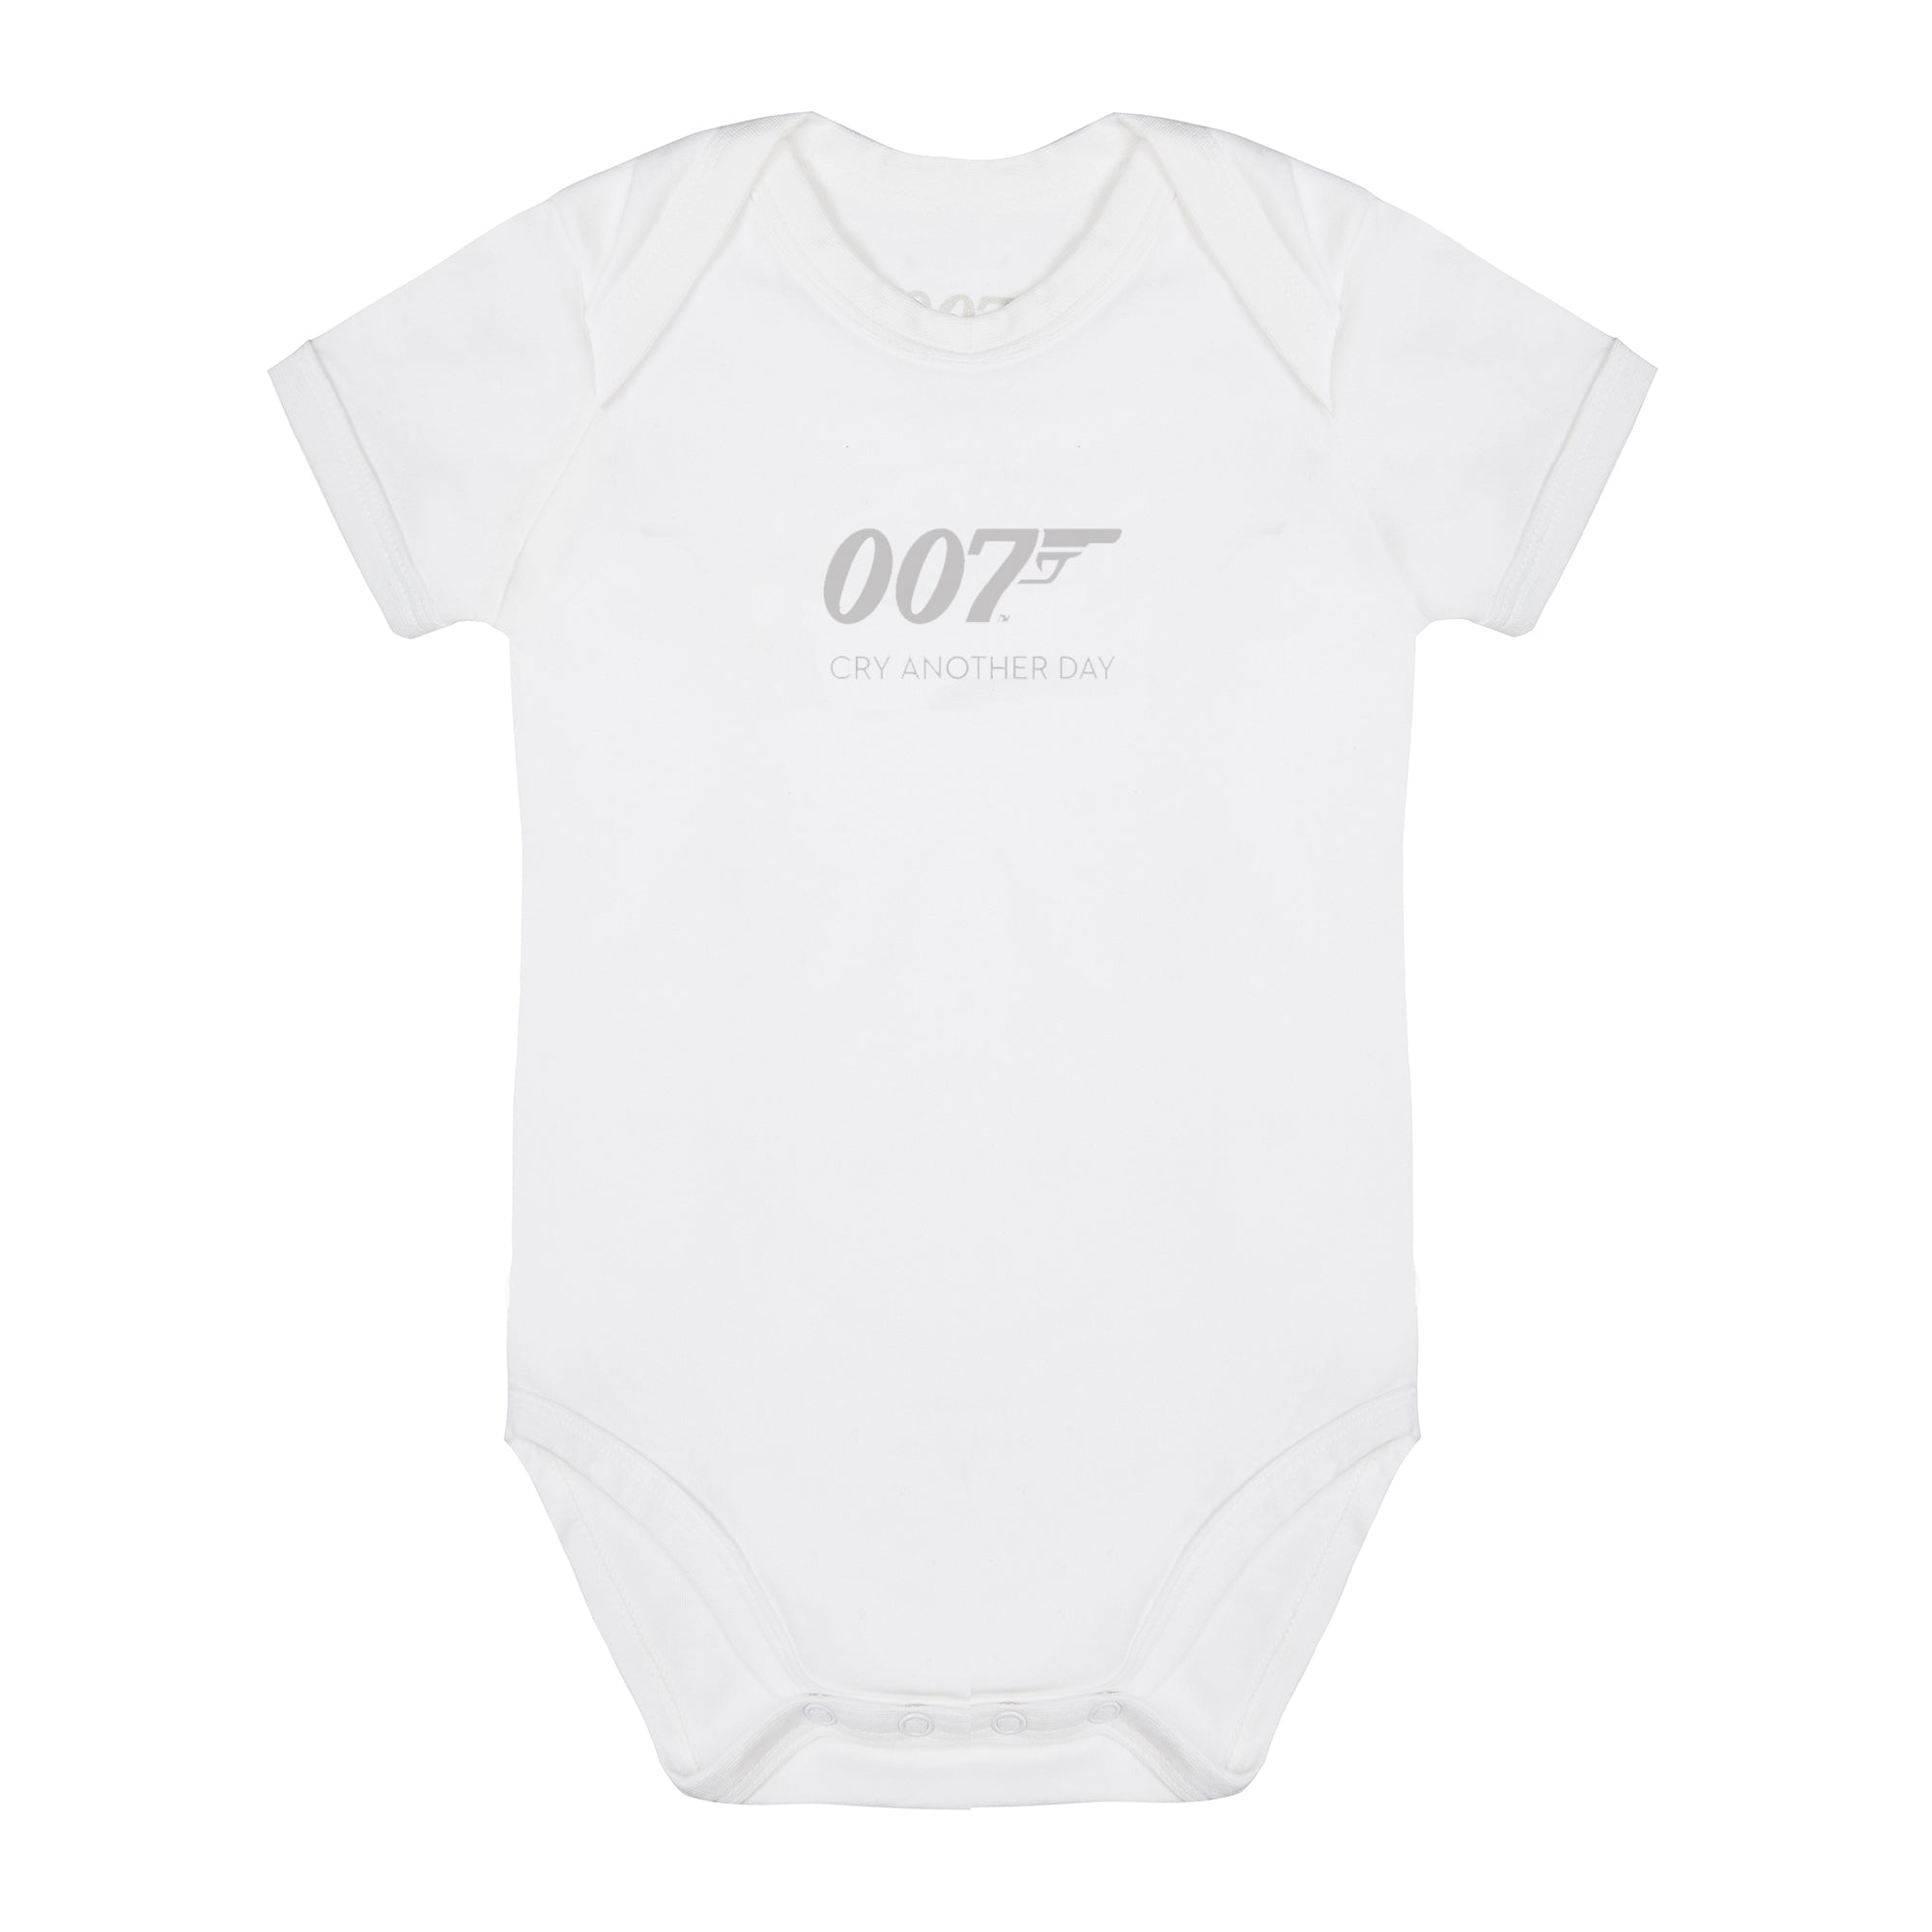 007 Cry Another Day White Baby Bodysuit